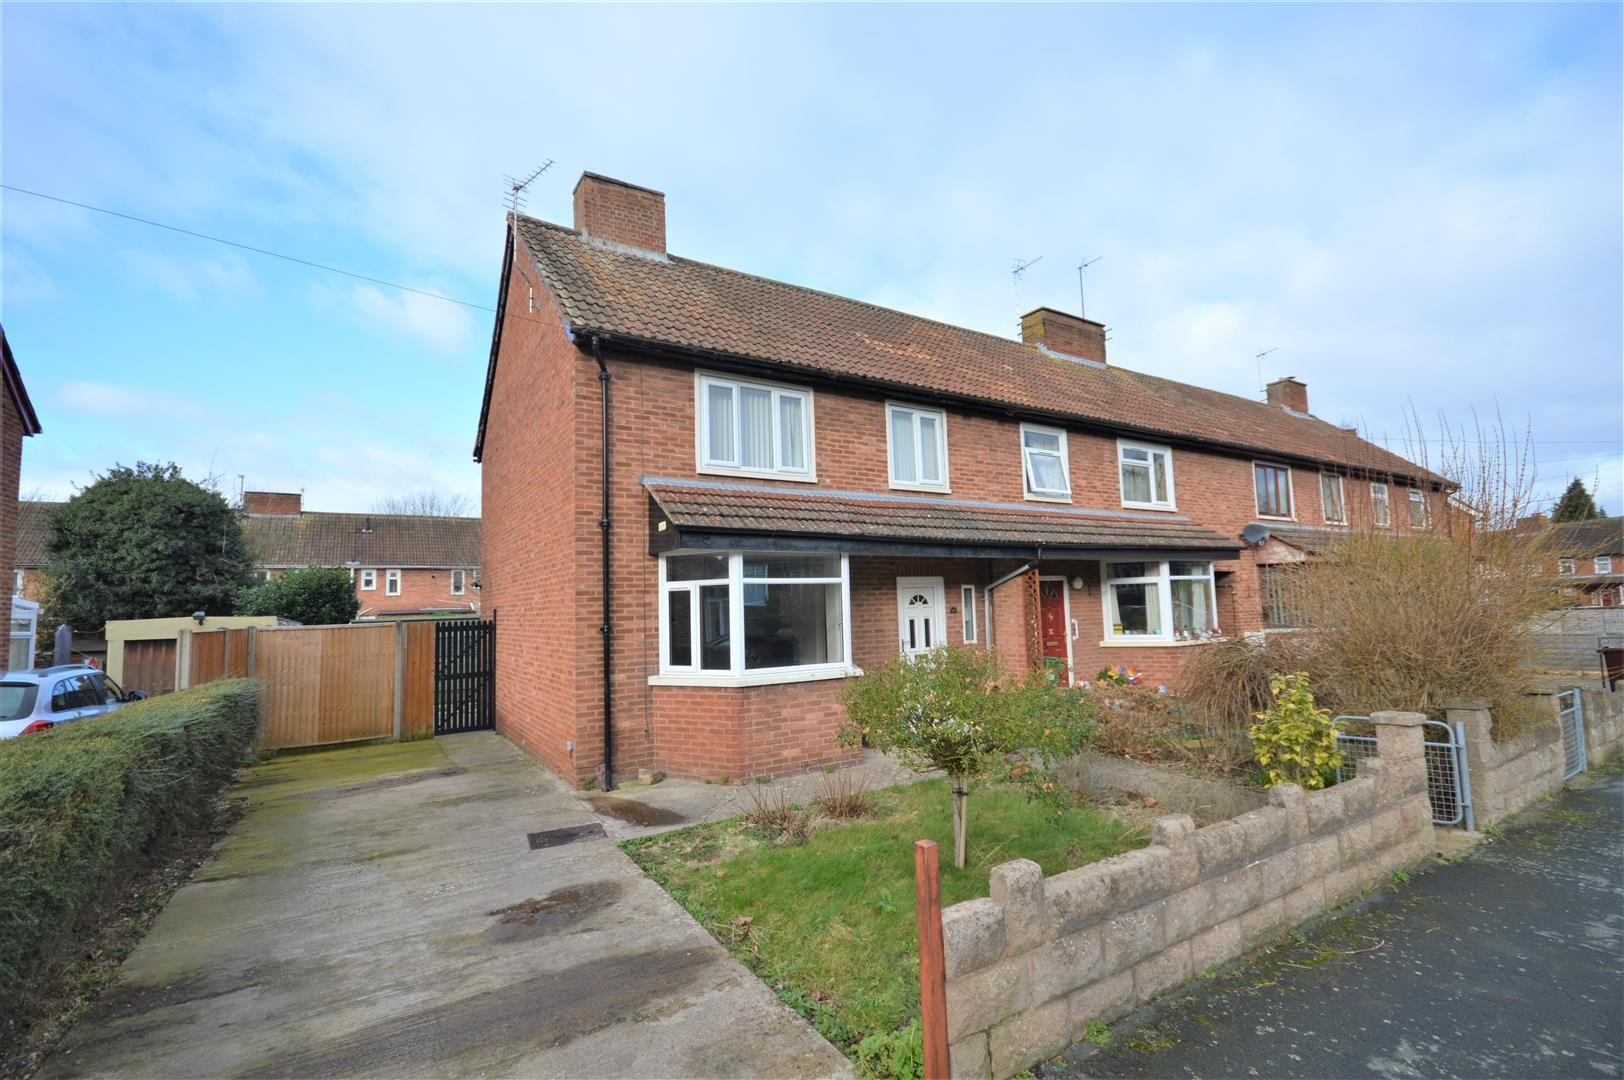 3 bed end-of-terrace for sale in Hereford  - Property Image 15